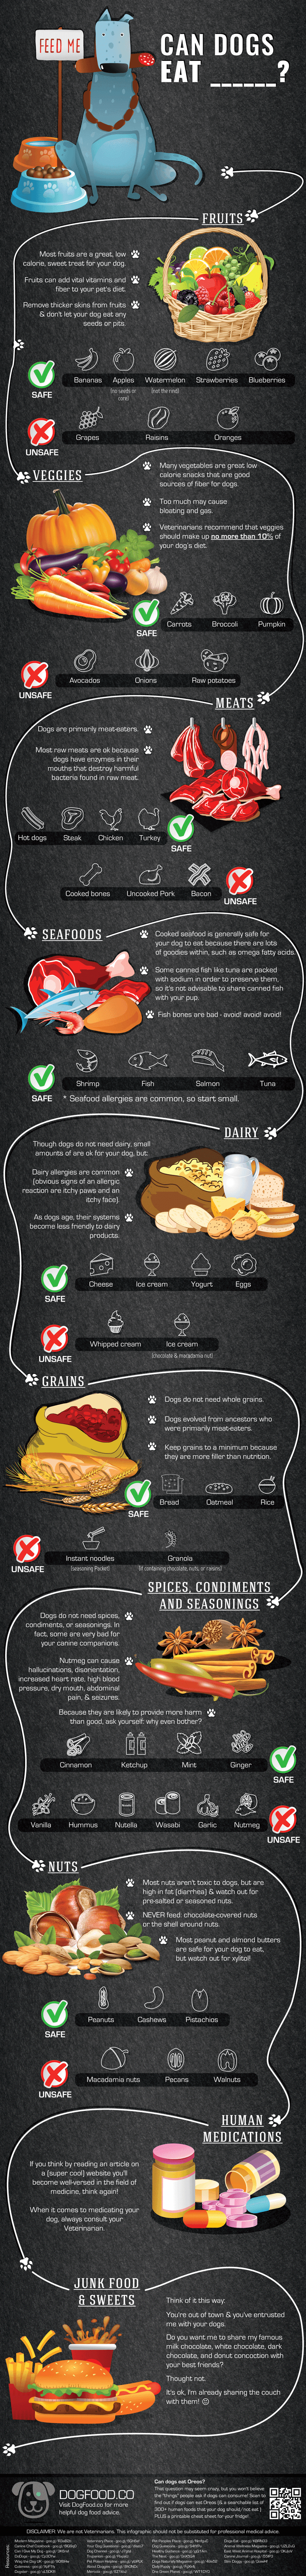 Can dogs eat Infographic